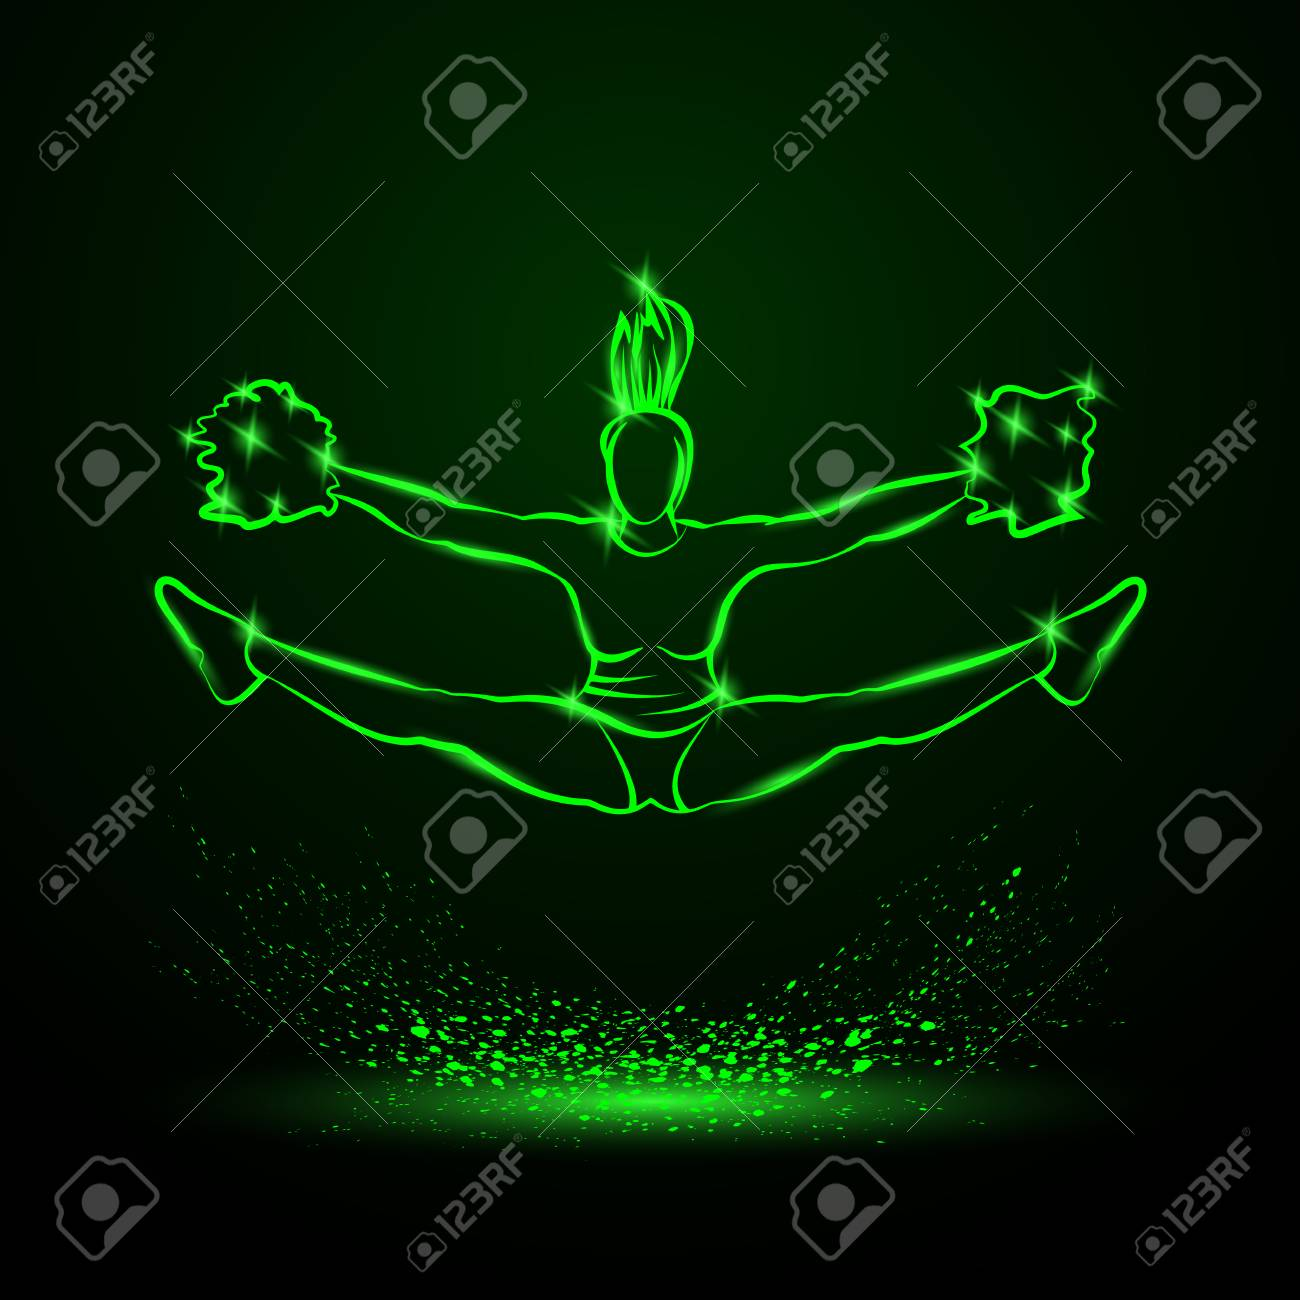 hight resolution of cheerleader jumps and doing splits with pom poms green neon cheerleading illustration for sporting poster